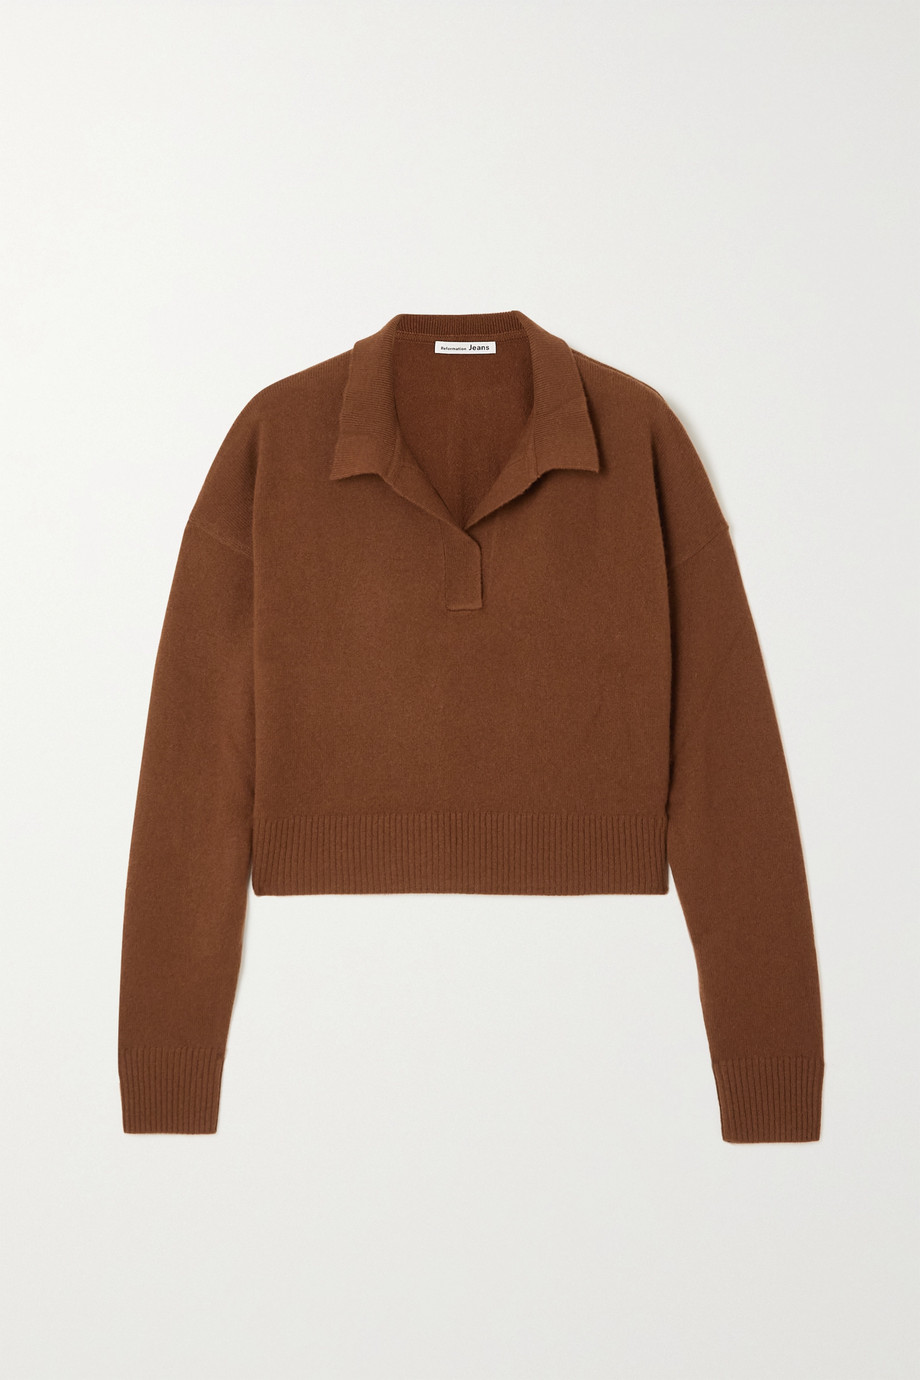 Reformation + NET SUSTAIN recycled cashmere-blend sweater